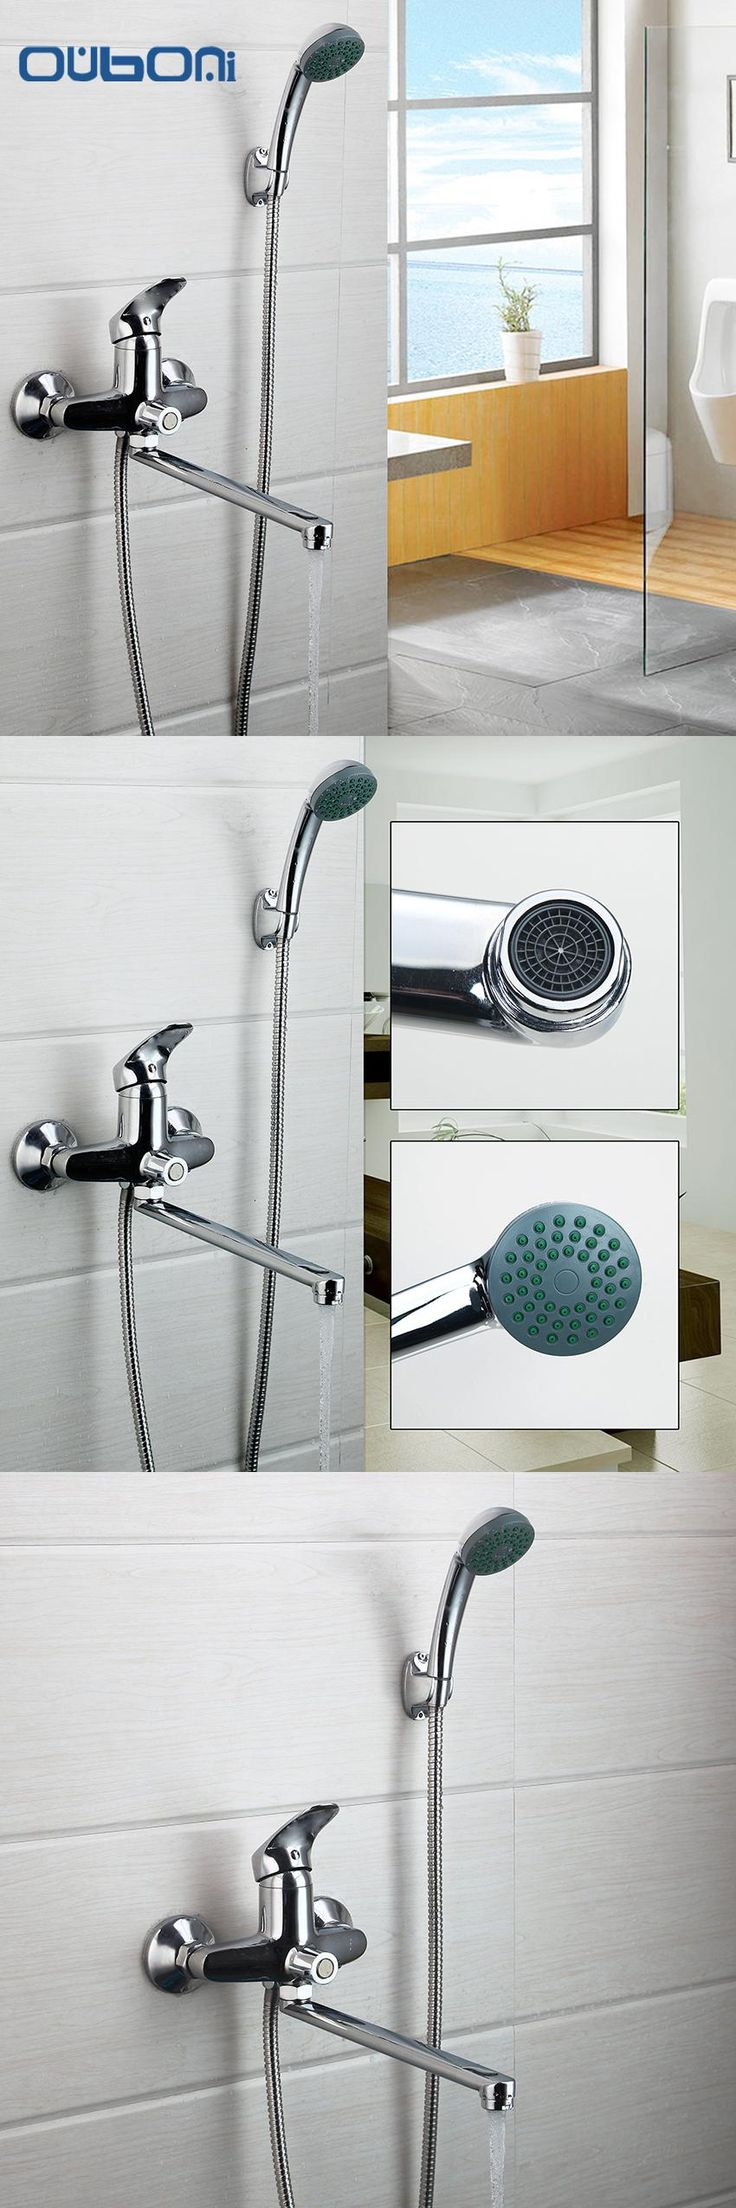 [Visit to Buy] RU New Arrival Bathroom Shower Faucet Bath Faucet Mixer Tap With Hand Shower Head Shower Faucet Set Wall Mounted #Advertisement